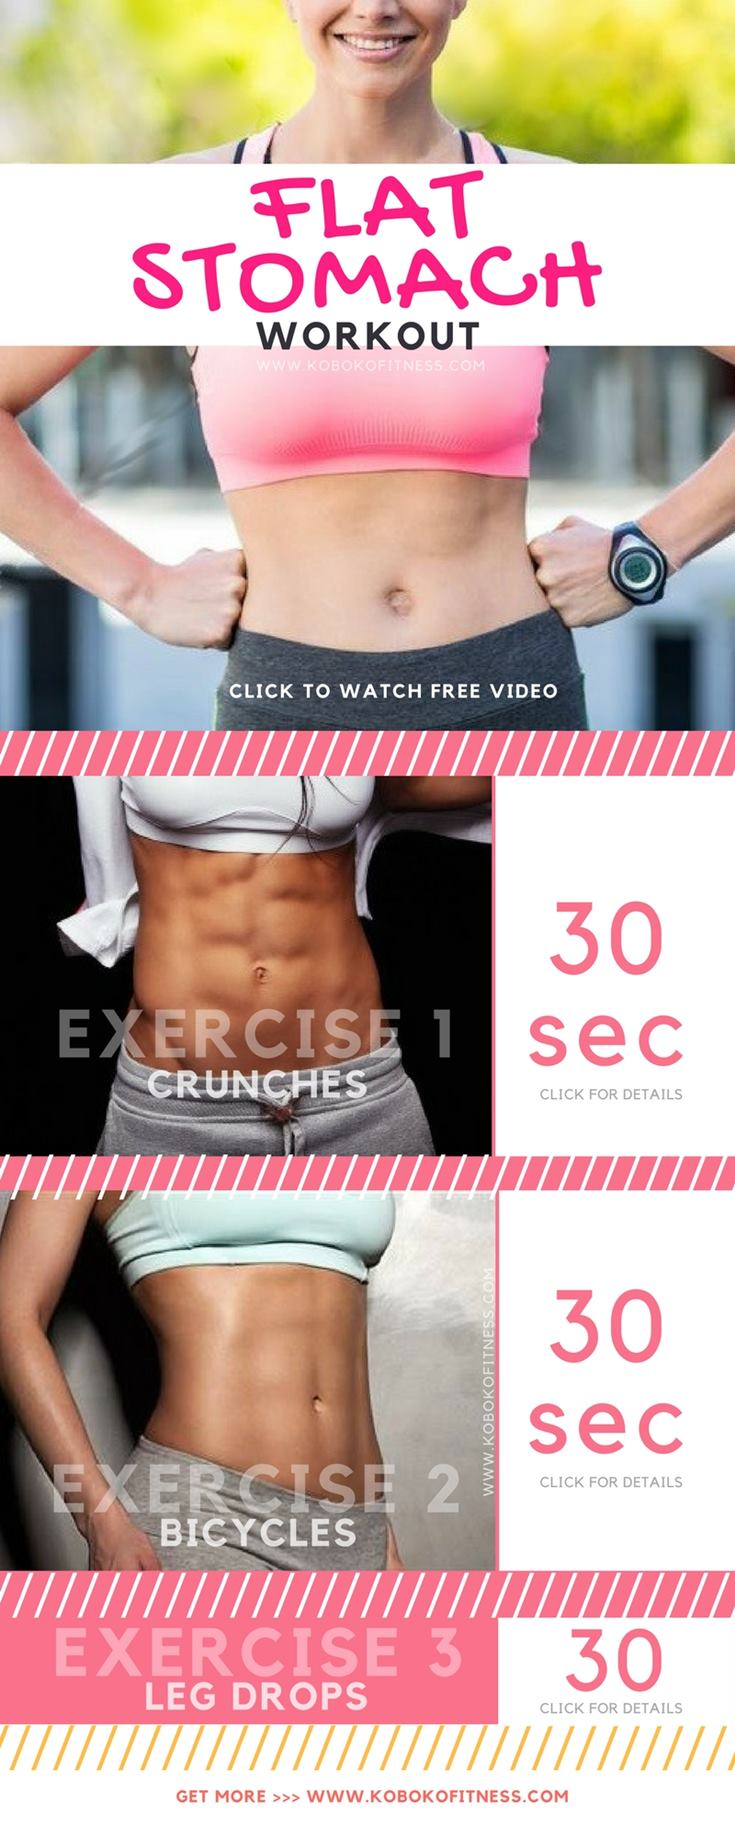 The result of this flat stomach workout is amazing. You will love it because it is easy to follow the video